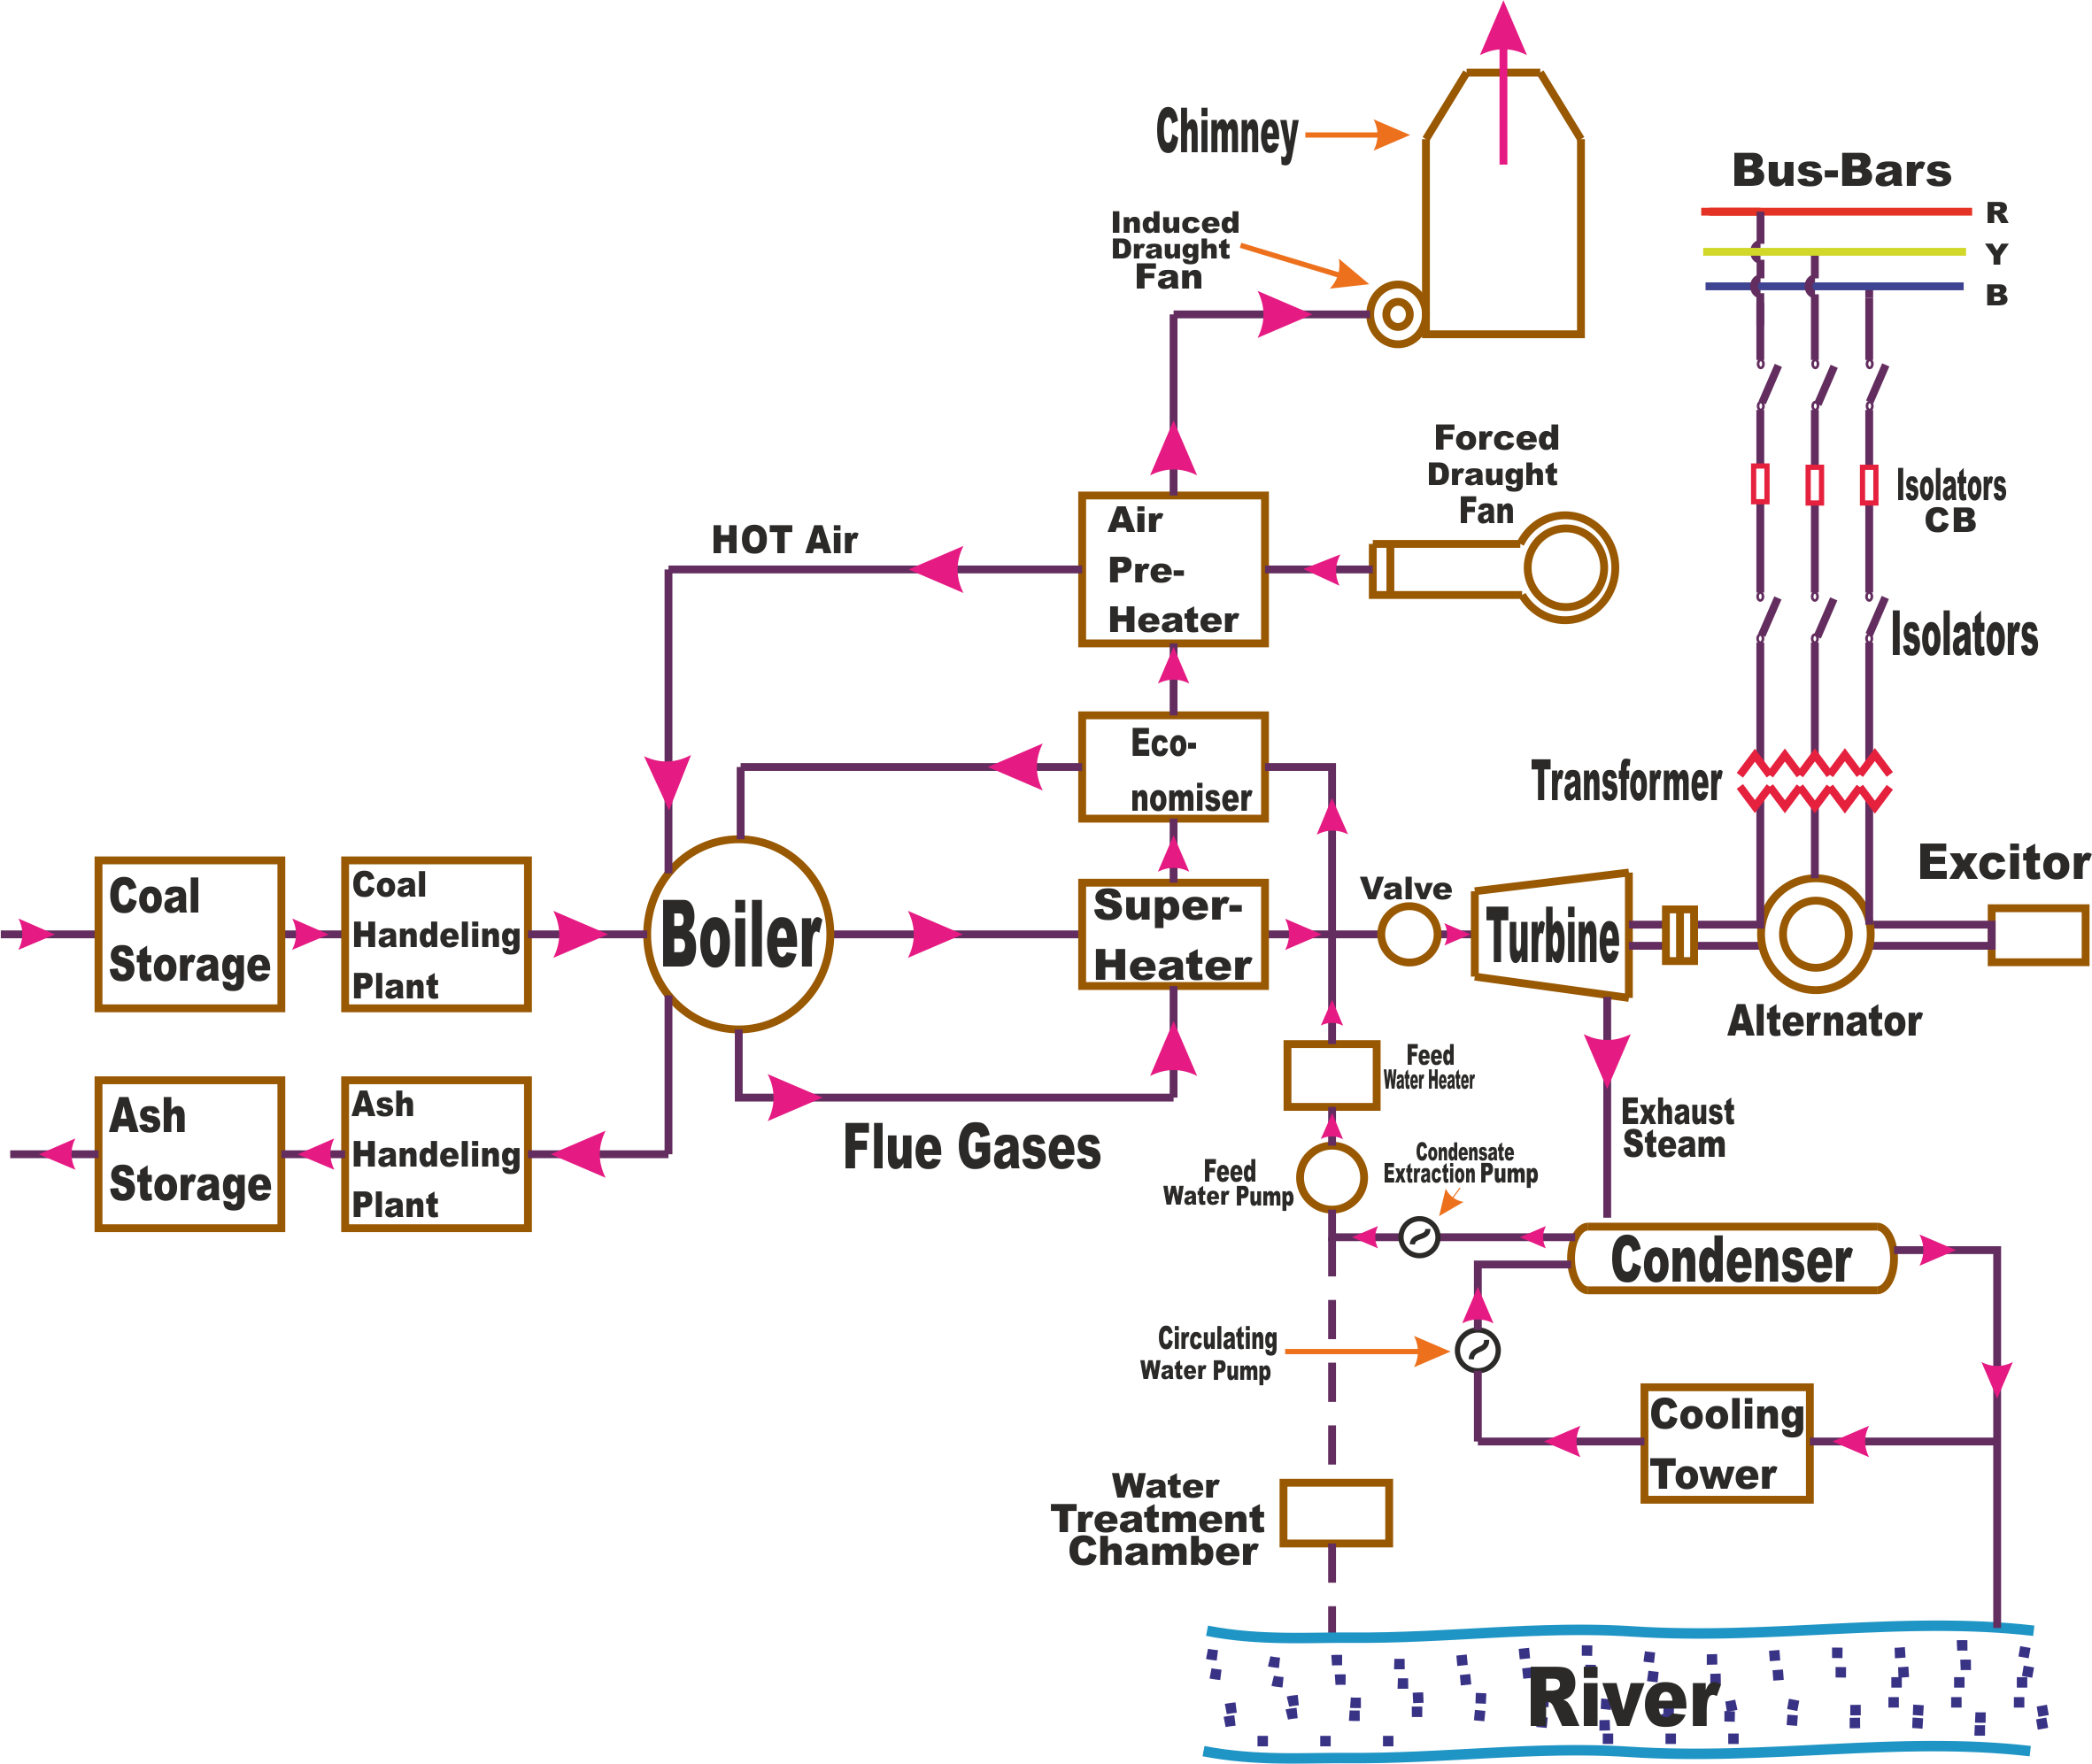 Water Turbine Circuit Diagram